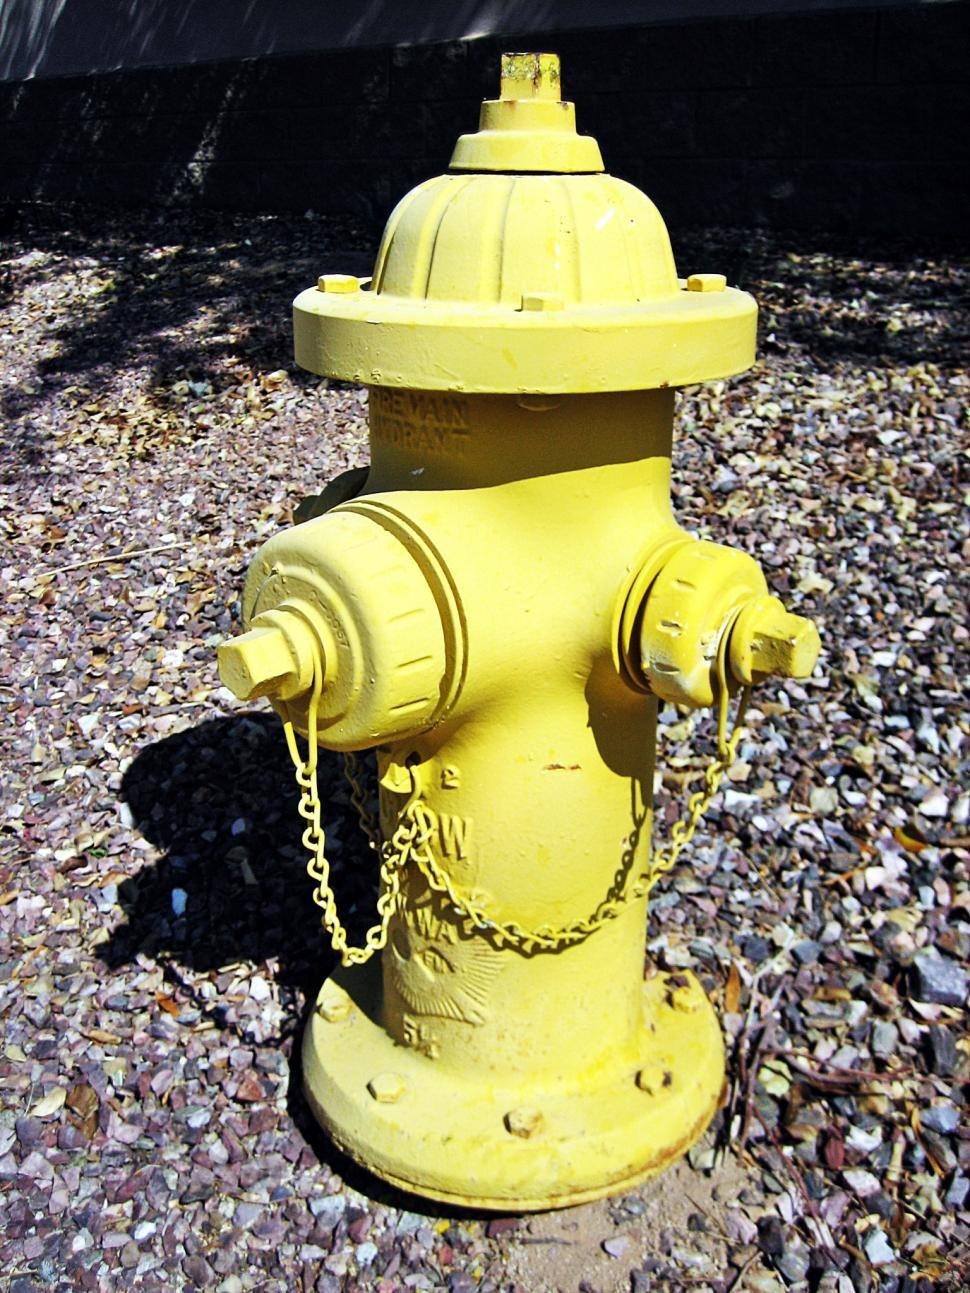 Download Free Stock HD Photo of Fire Hydrant Online